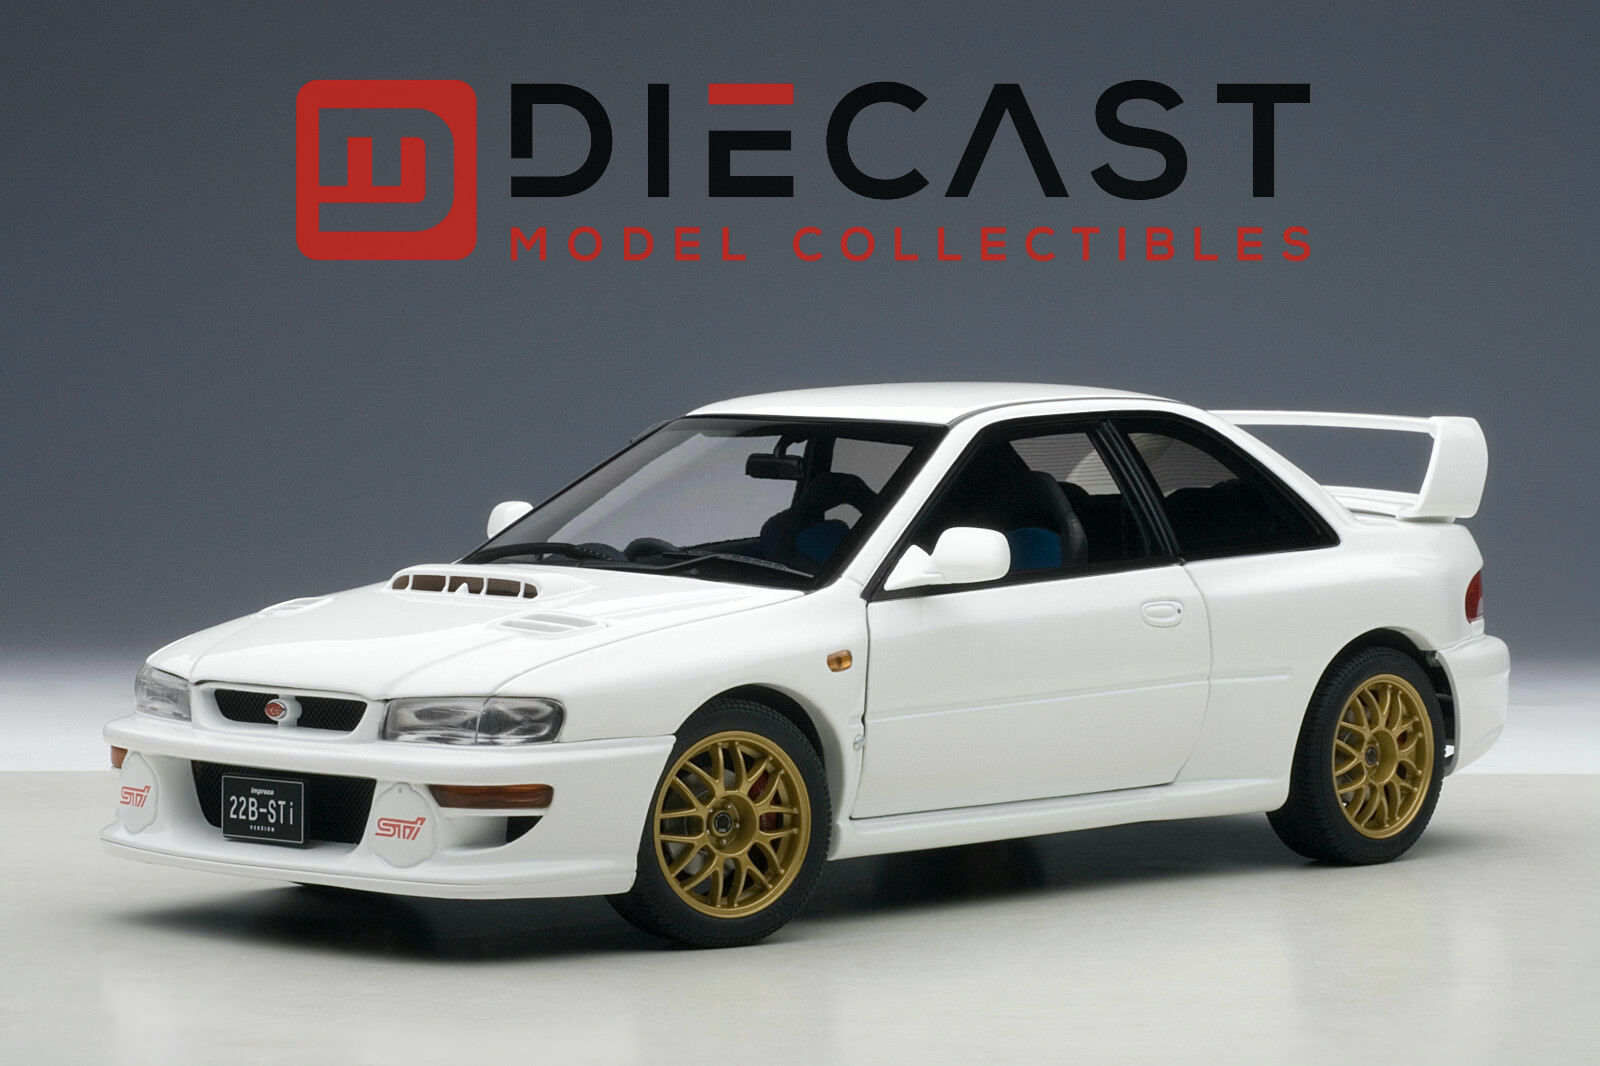 AUTOART 78605 SUBARU IMPREZA 22B, bianca , UPGRADED VERSION L.E. 1500 PCS 1:18TH